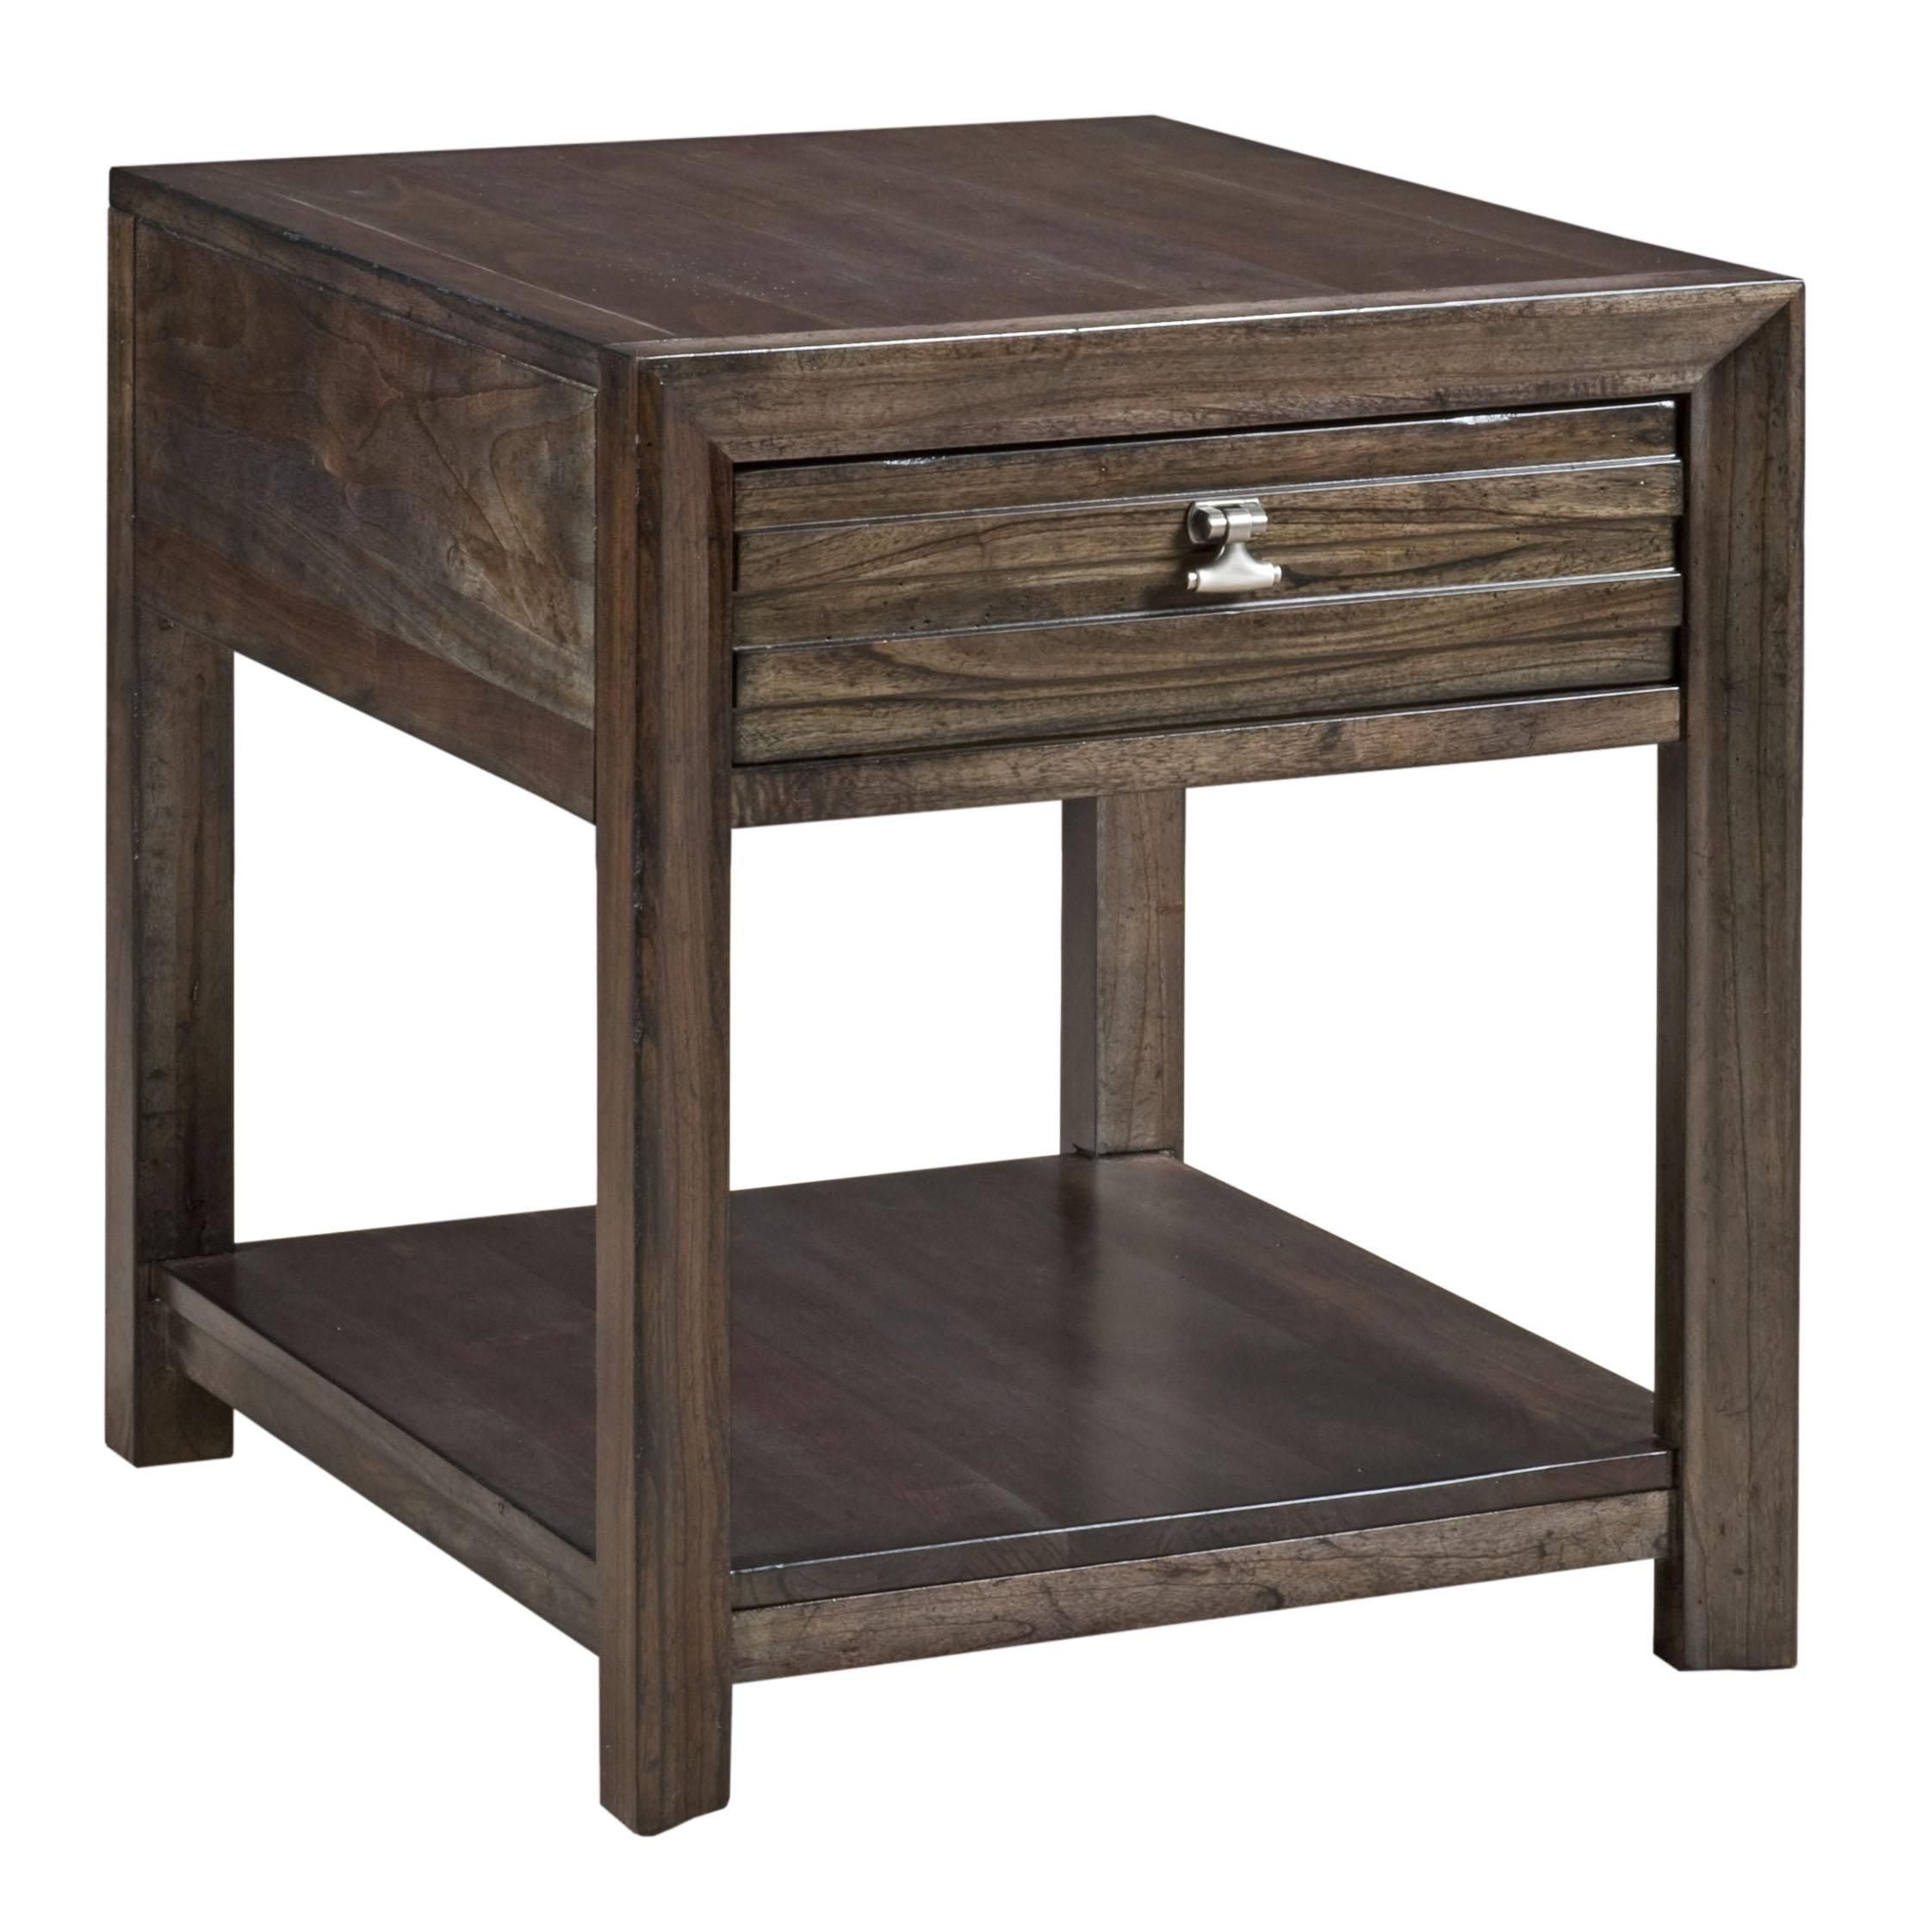 Kincaid Furniture Montreat Montreat Drawer End Table